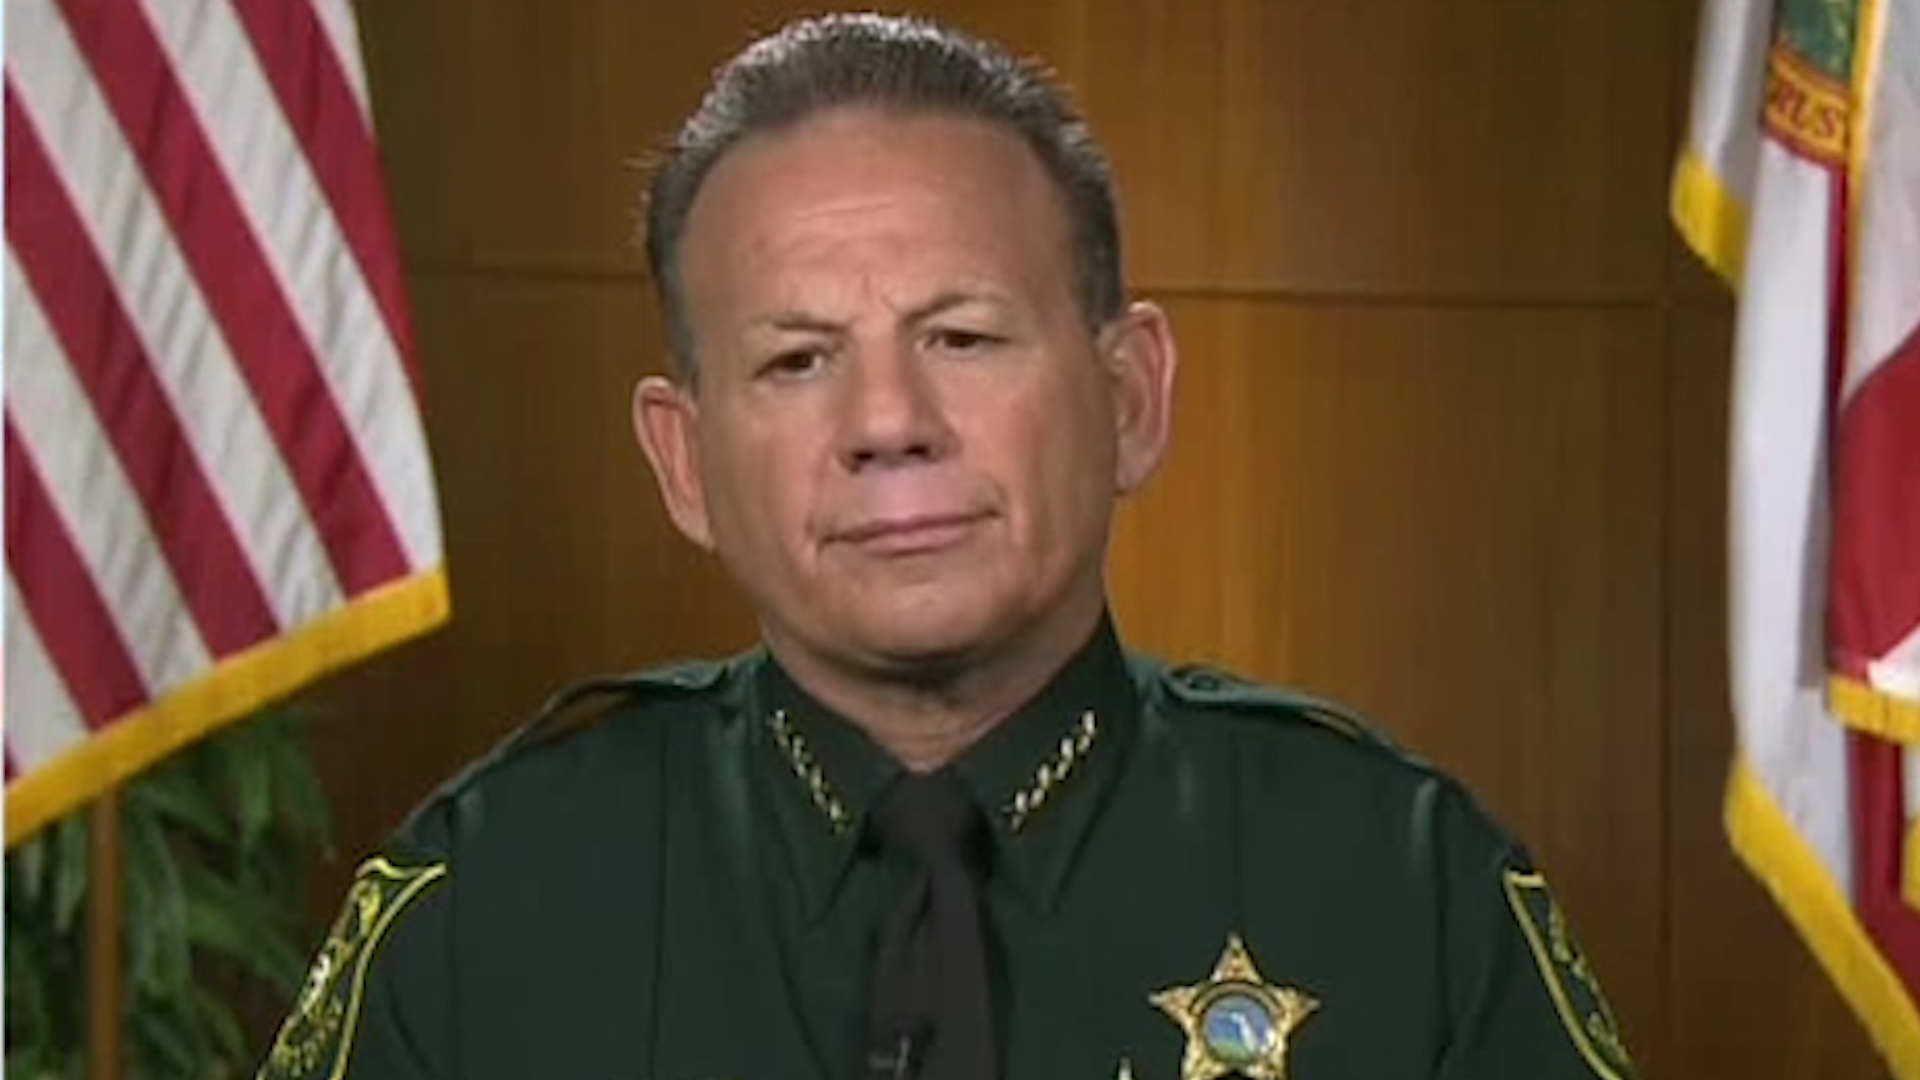 Florida lawmakers call for suspension of Broward sheriff after Parkland massacre as he defends 'amazing leadership'